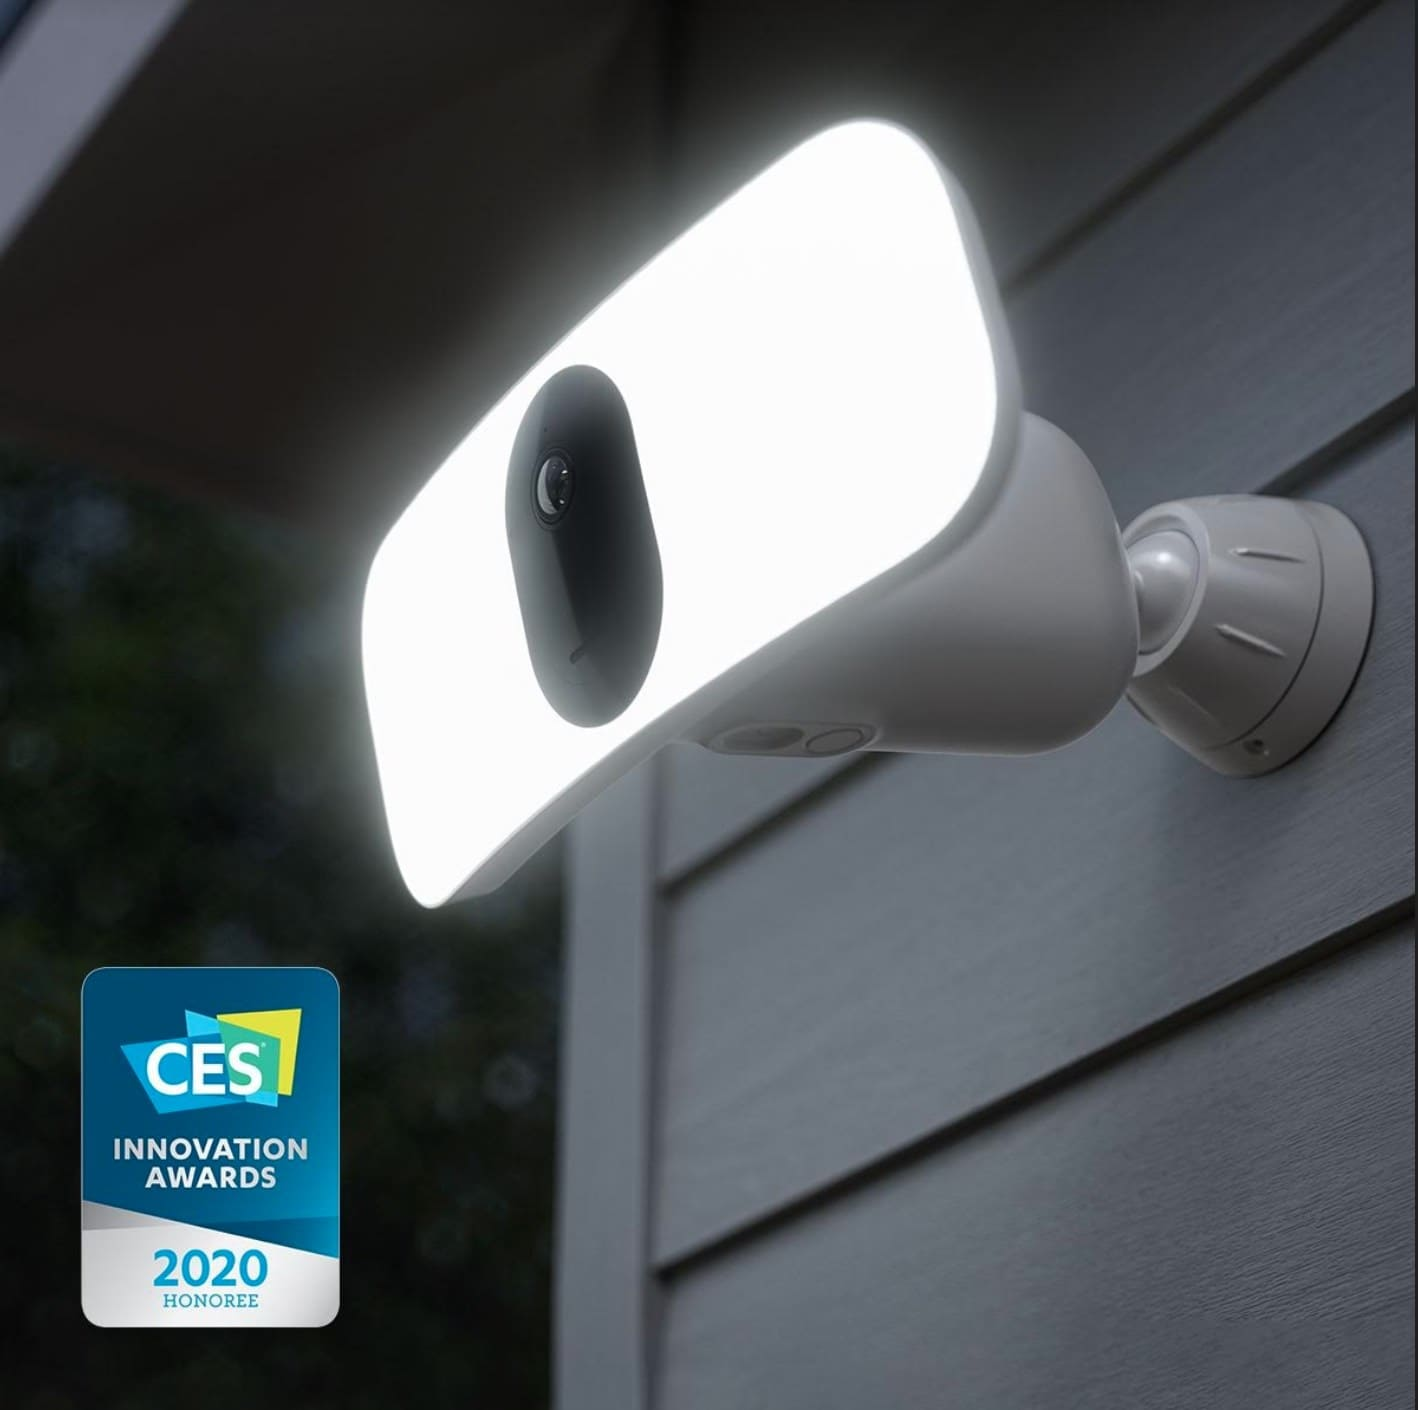 Arlo-Pro-3-Floodlight-Camera